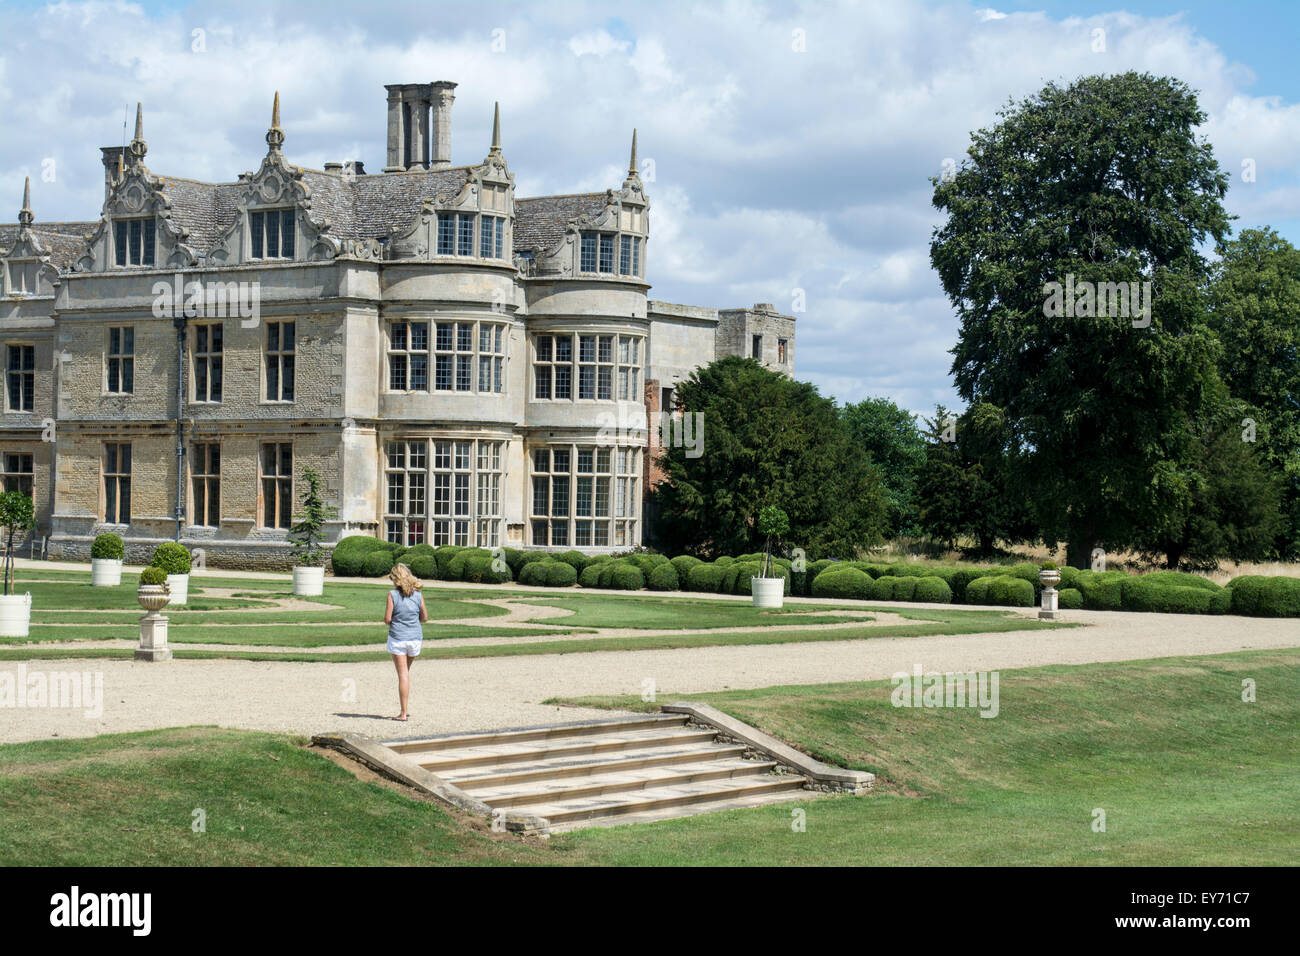 Female visitor listens to the audio guide in the formal gardens at Kirby Hall Kirby Hall, Northamptonshire, UK - Stock Image